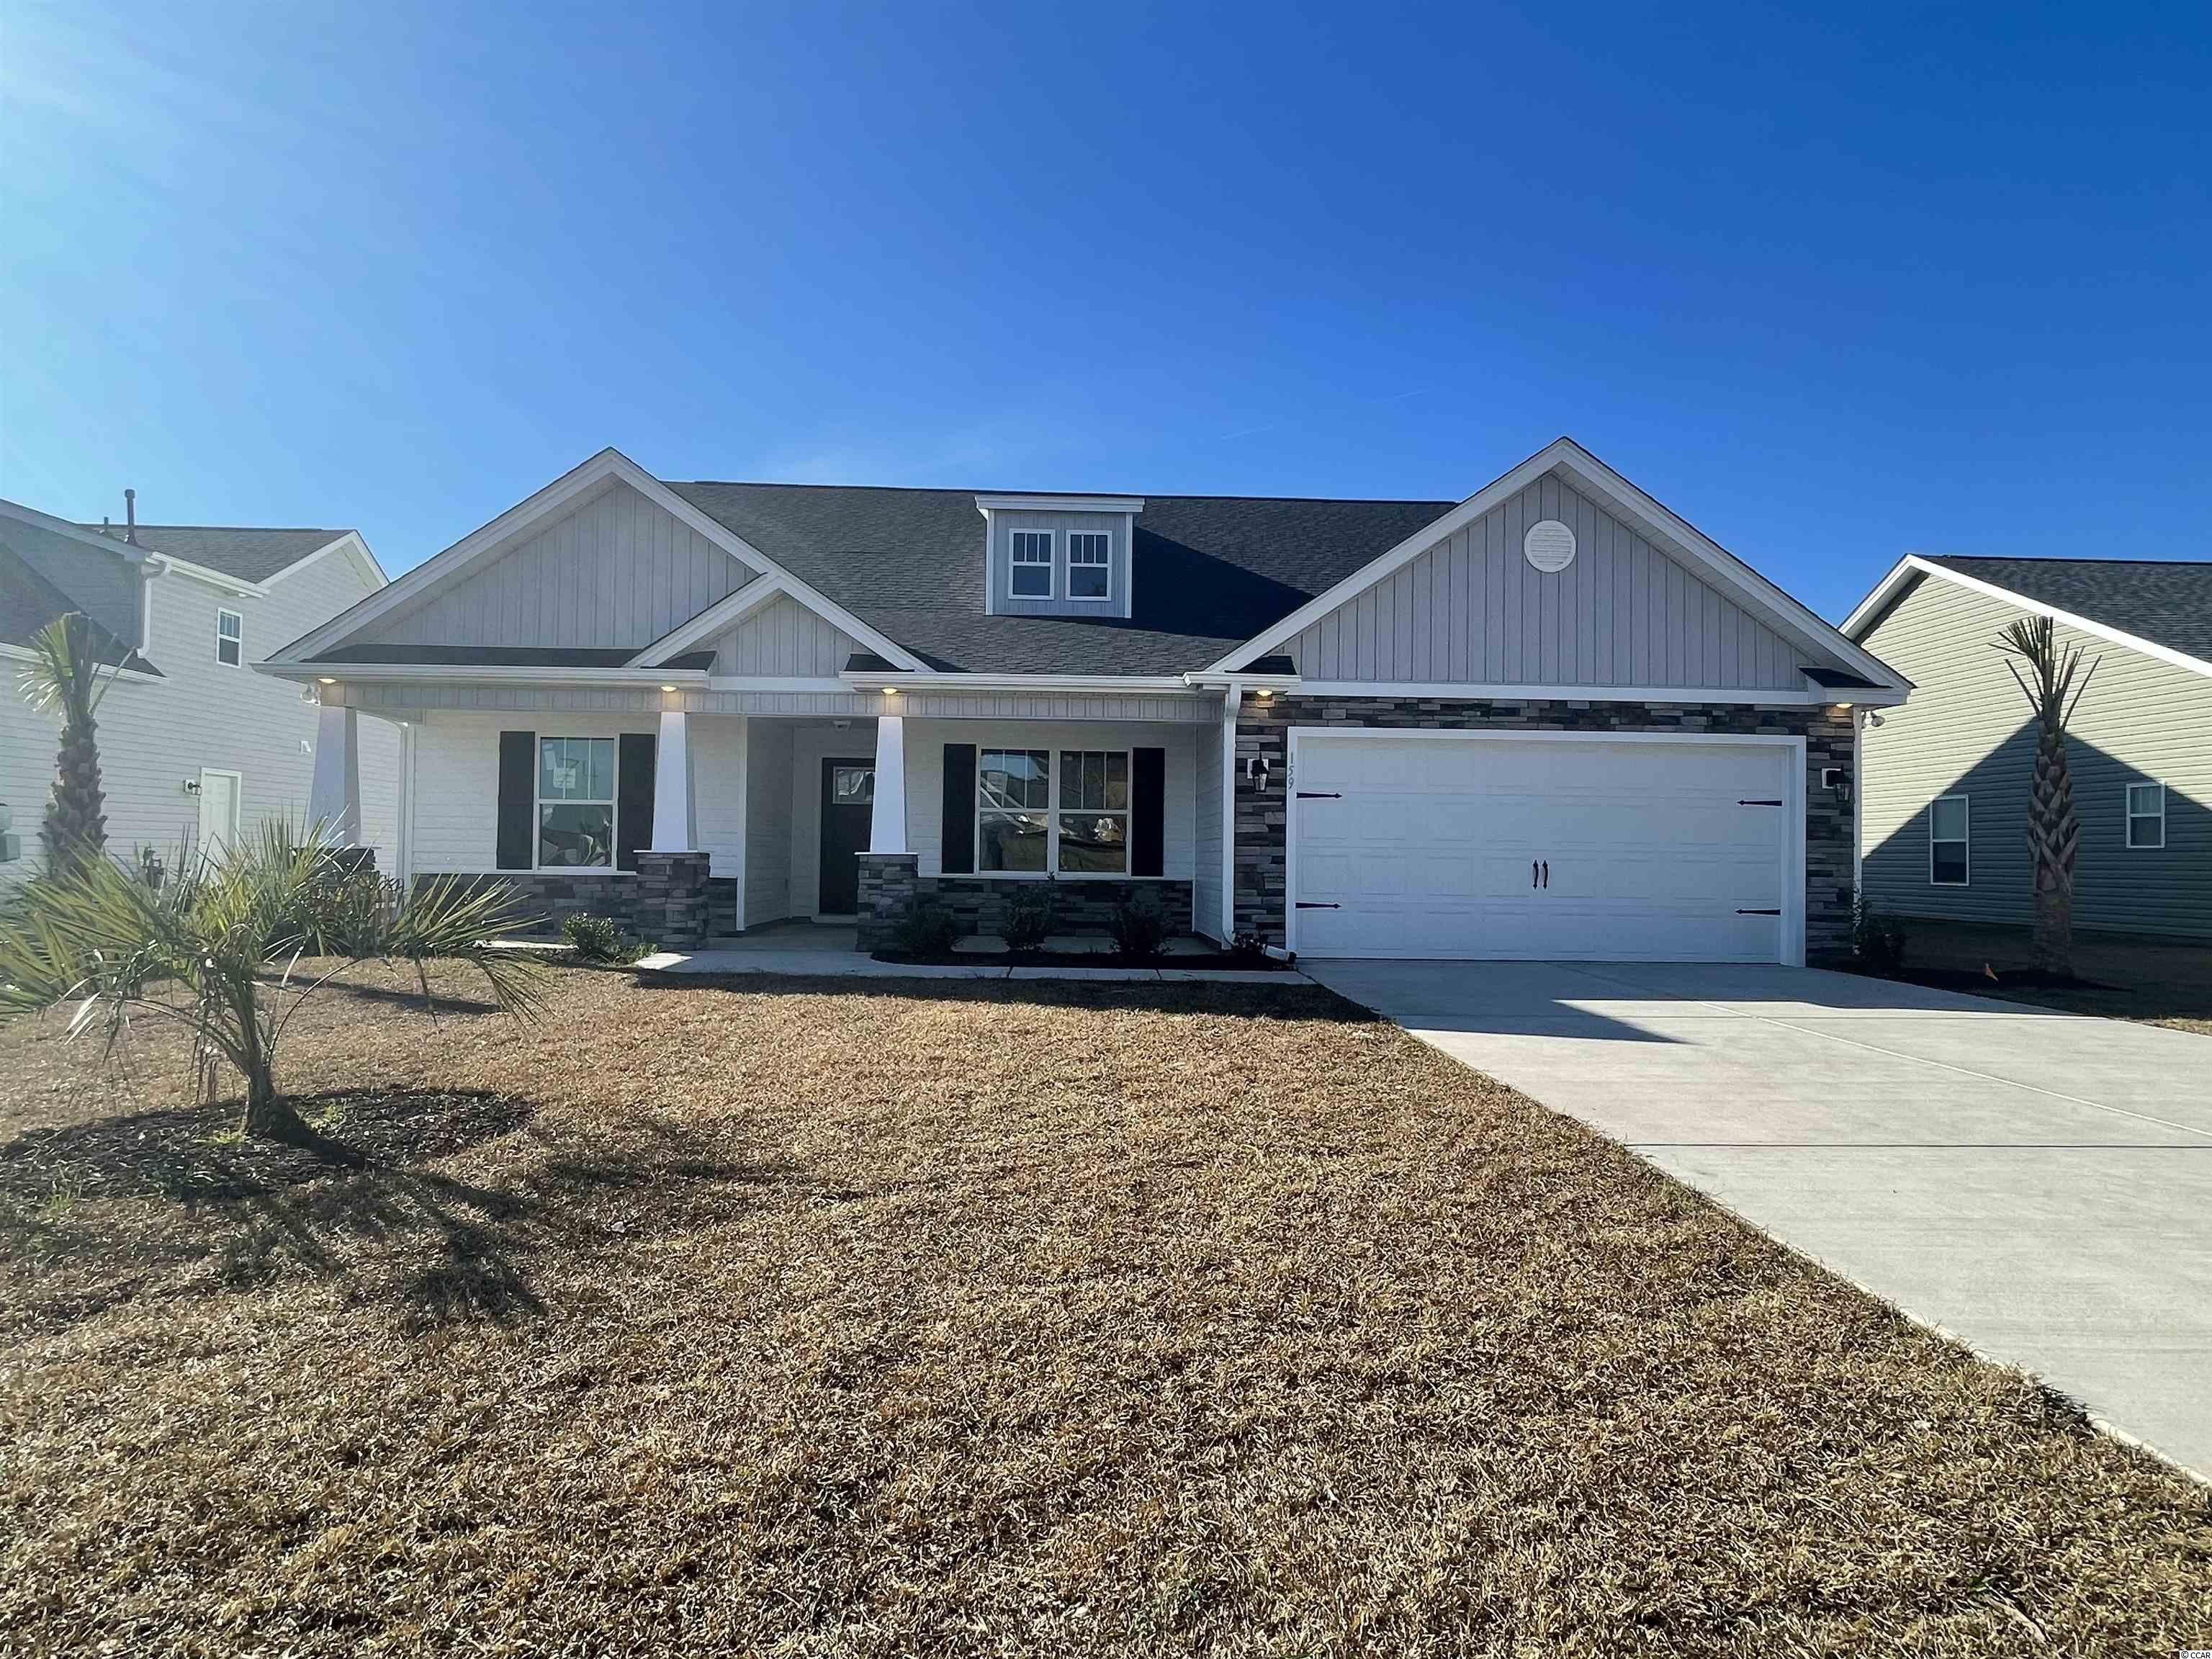 """Natural Gas quiet community located in Little River/North Myrtle Beach only a few miles from the Beach and major shopping! This is the Aquamarine floor plan with Bonus room and full bathroom above garage. Open floor plan on a 0.20 ac home site featuring 4 bedrooms, 3 baths includes a finished 2 car garage. Formal dining room and breakfast nook. Cultured marble shower and tub in Master bath. Ceramic tile in all bathrooms and Laundry room, LVP flooring in Family Room, Gallery, Foyer, Hall, Study, Breakfast Nook. Granite Kitchen Countertops, crown molding on kitchen cabinets with hardware included. Vaulted ceiling in Family room, Master bdr. Wainscot and 5 1/2 """" beaded baseboards for Custom look!! Home also includes TAEXX pest control tubing, lawn irrigation and Ring video doorbell!!! Stone accents on the exterior as well. All measurements are approximate *Photos of a similar home* Some items on the photos may be an additional cost. Anticipating completion time Fall 2021"""